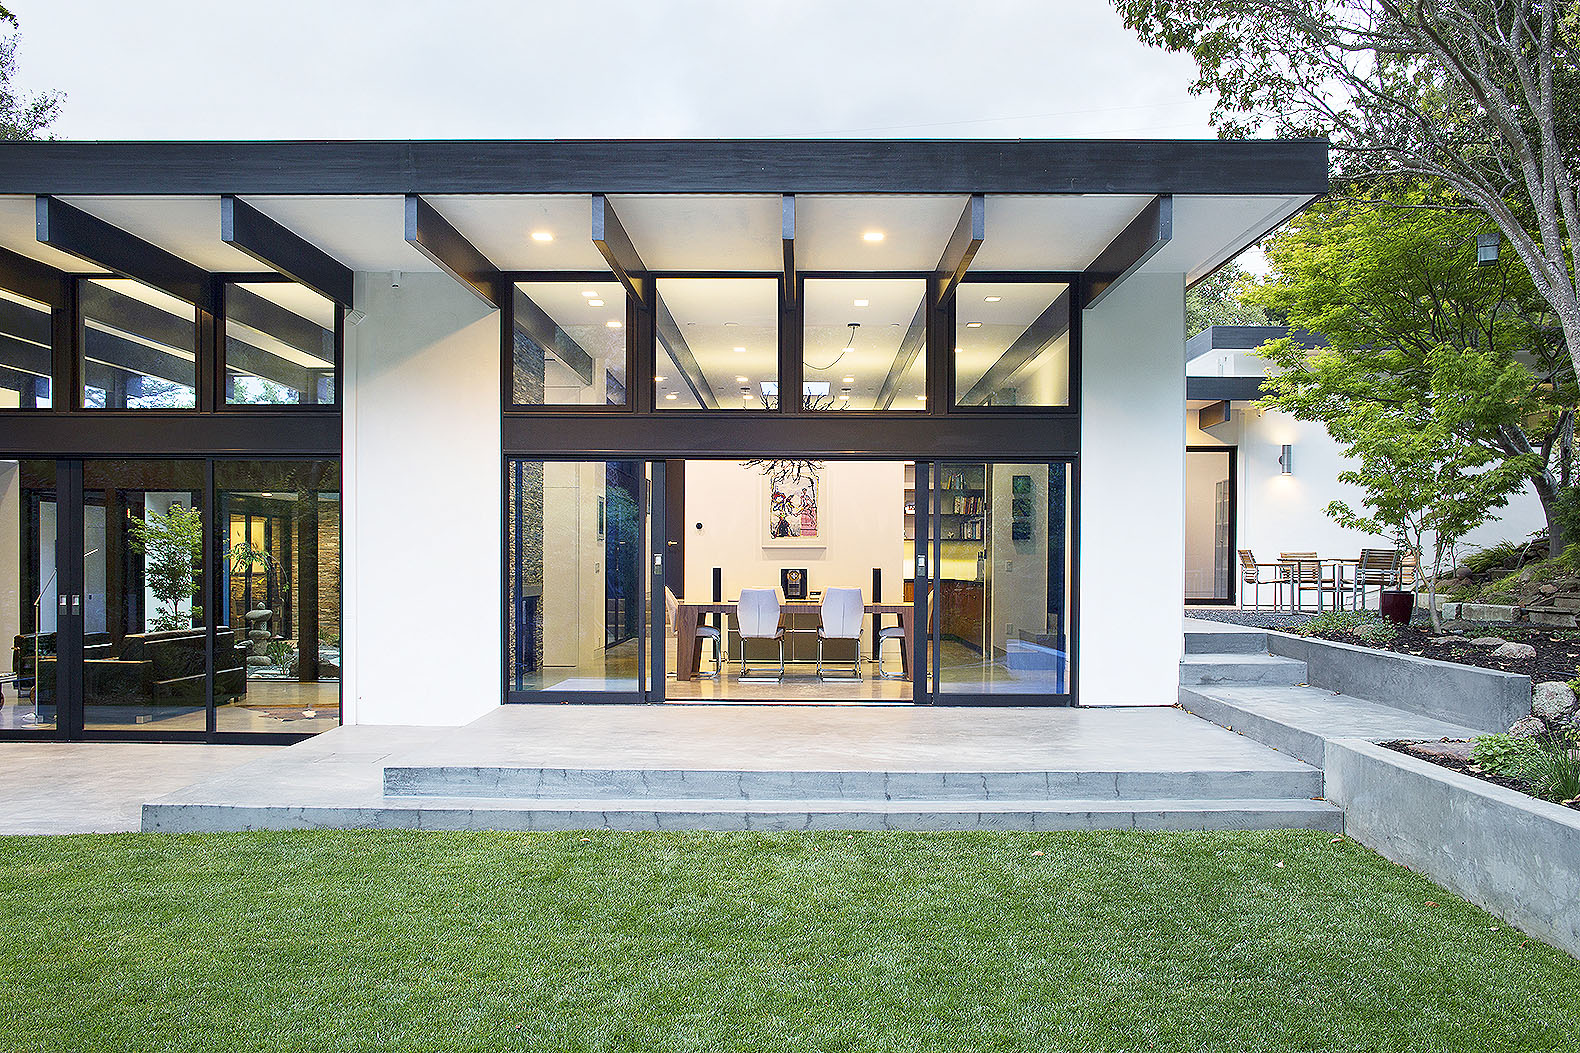 klopf architecture replaced a dilapidated 1940s house with a